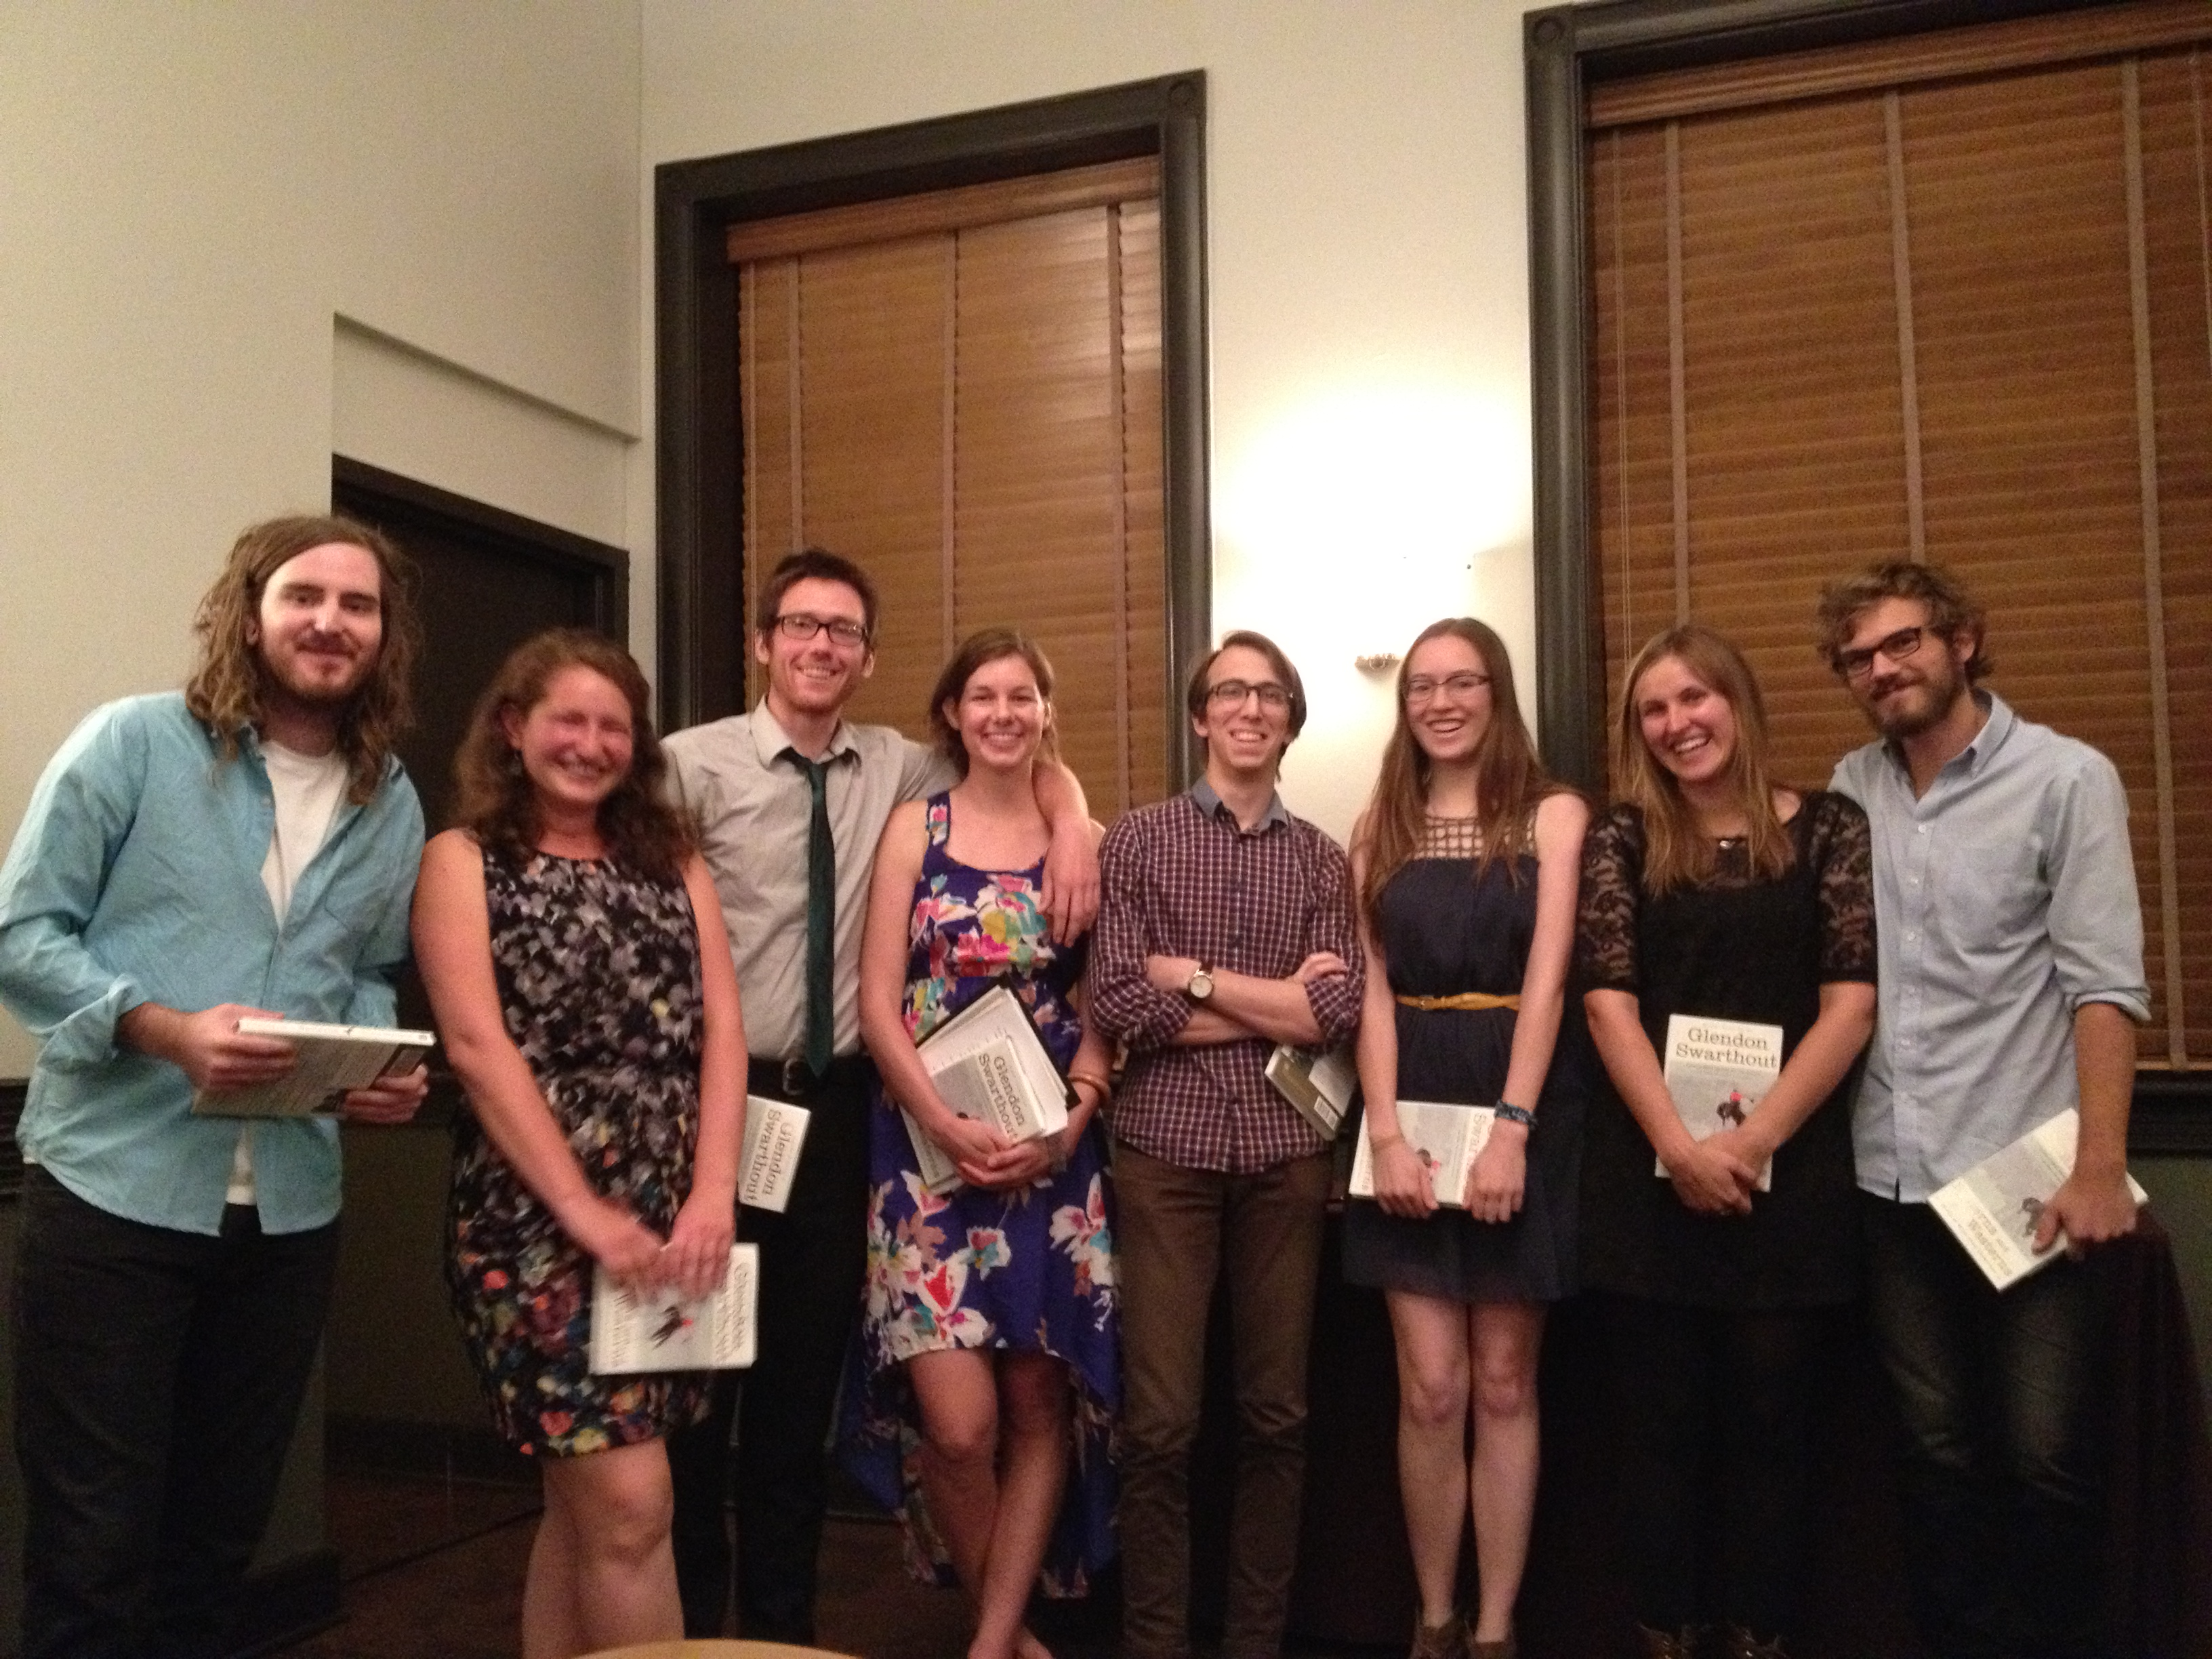 Winners of the Swarthout Awards in 2013